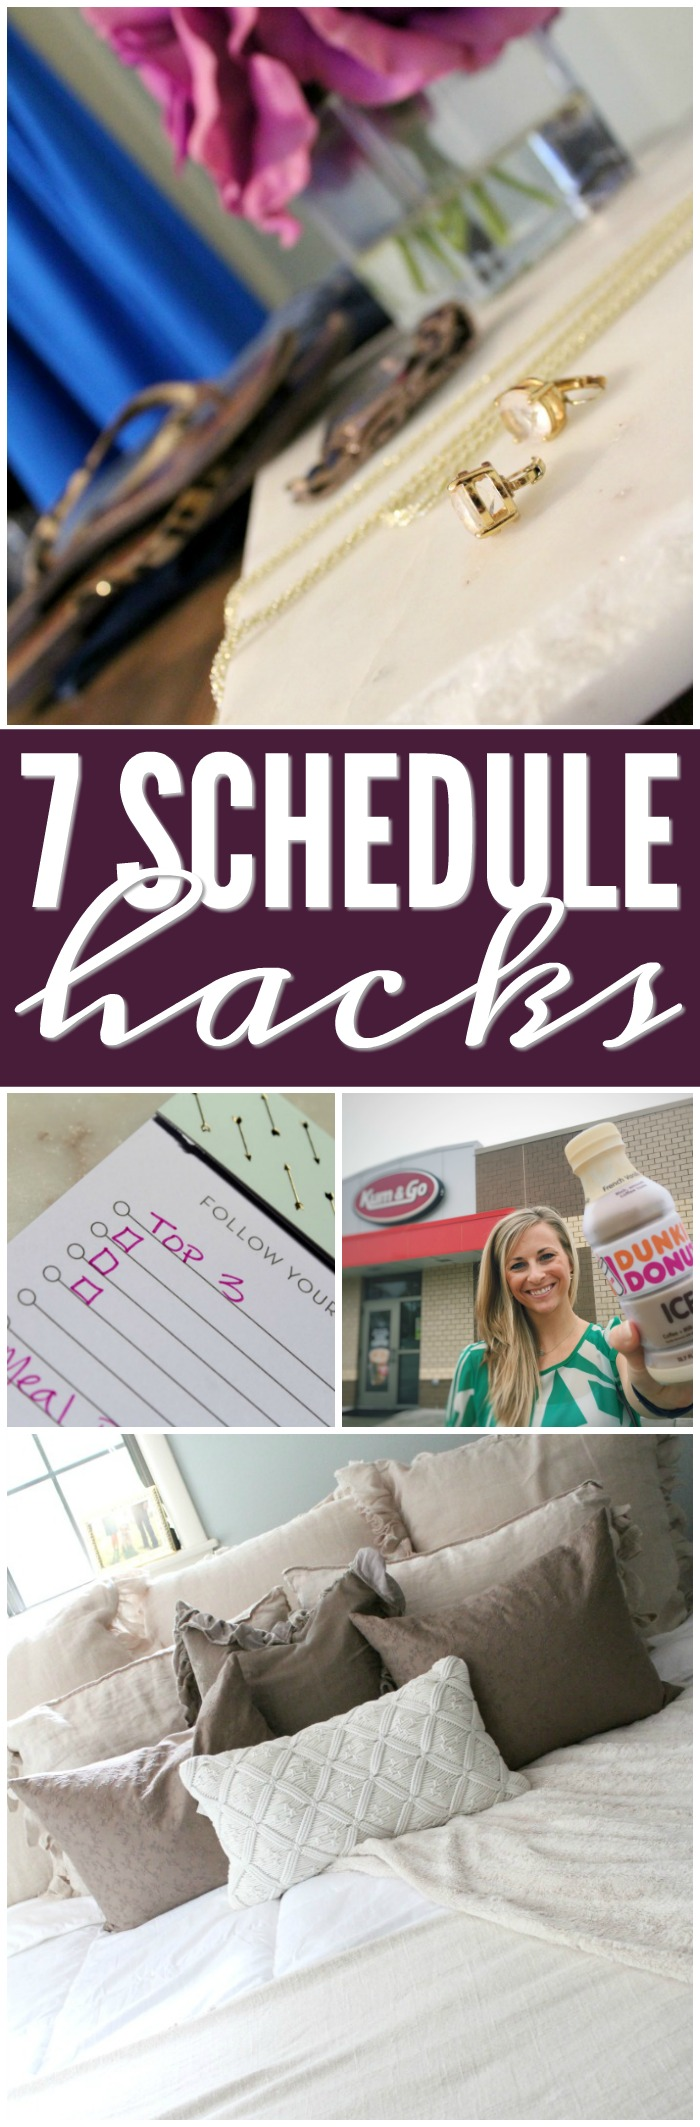 7 Schedule Hacks for Fall! Tips and Tricks to Prioritize, Maintain, and Manage your schedule with easy organiation tips & system HACKS!